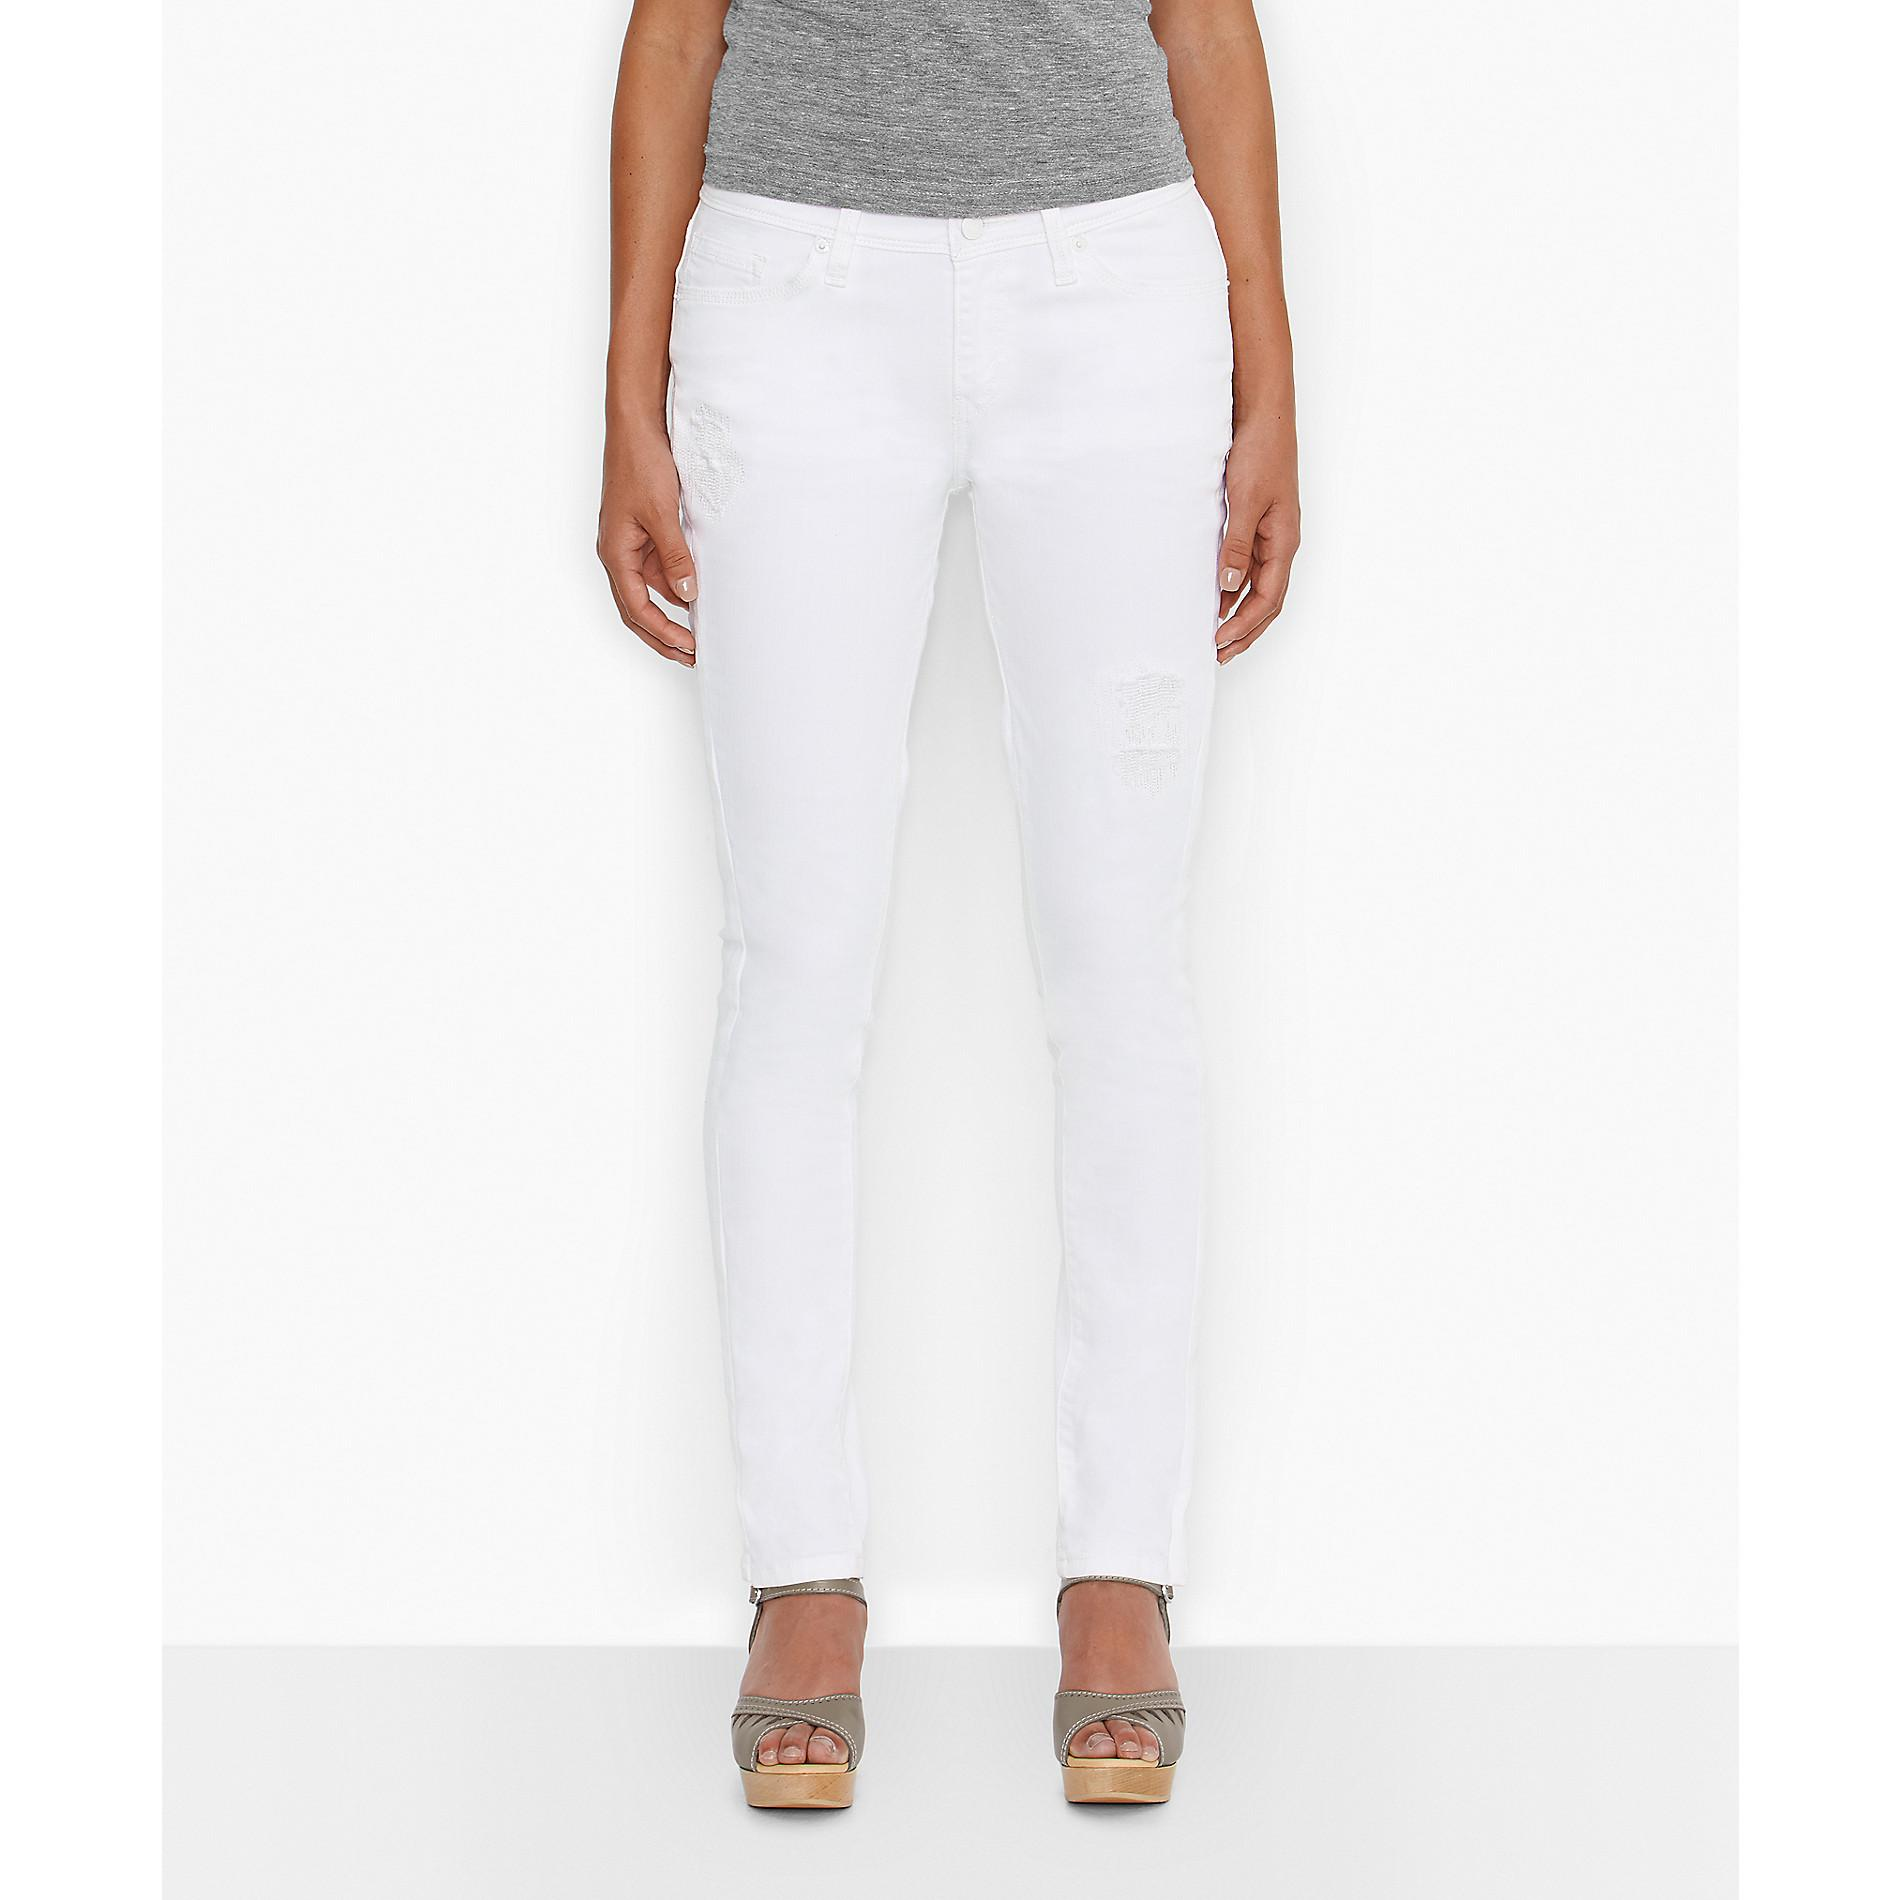 Levi's Women's 529 Curvy Jeans at Sears.com